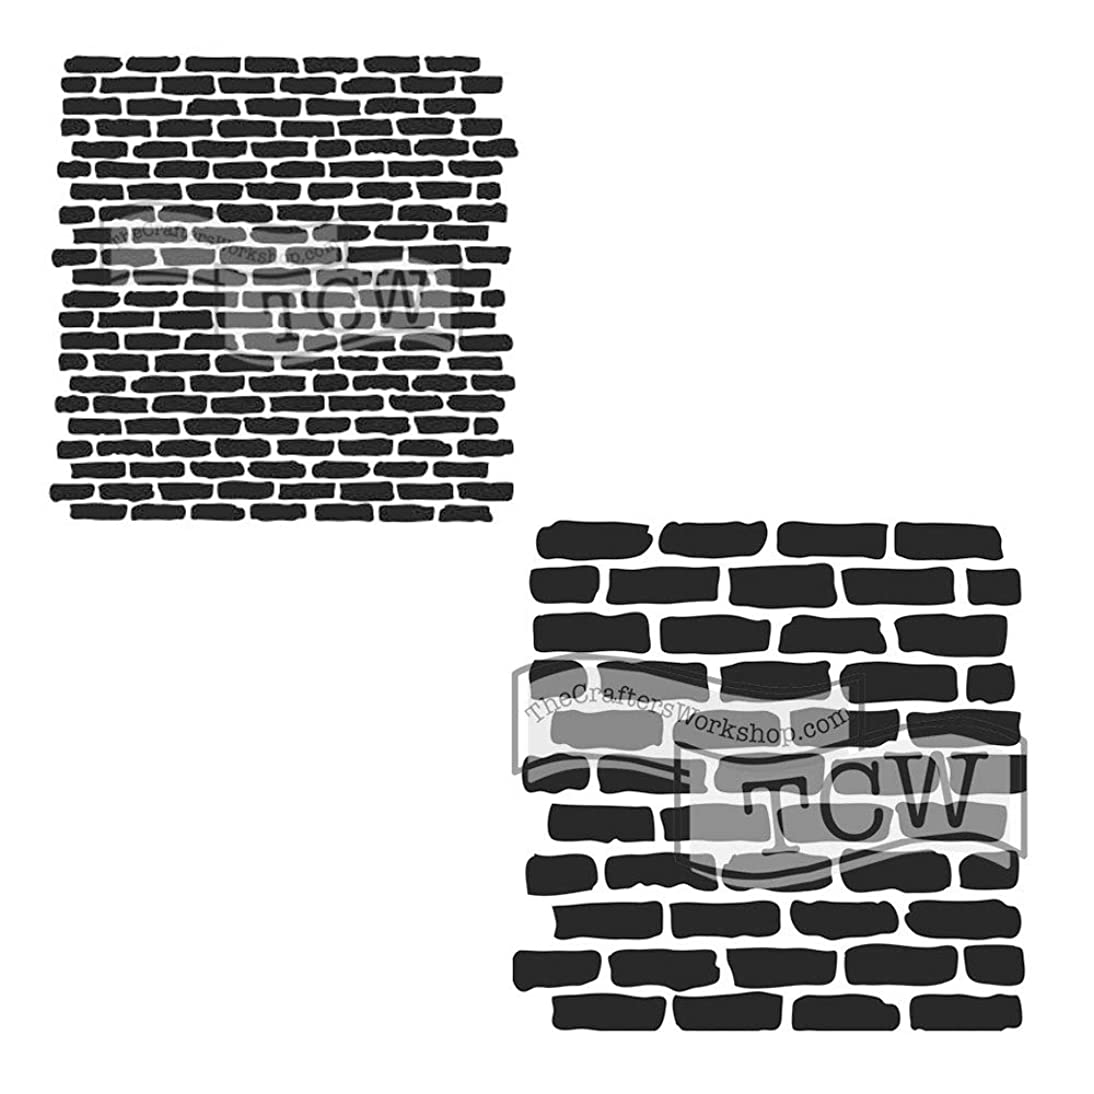 Crafter's Workshop Stencil 2 Pack, Reusable Stenciling Templates for Art Journaling, Mixed Media, and Scrapbooking, TCW790 Micro Bricks & TCW191 Stencil Bricks